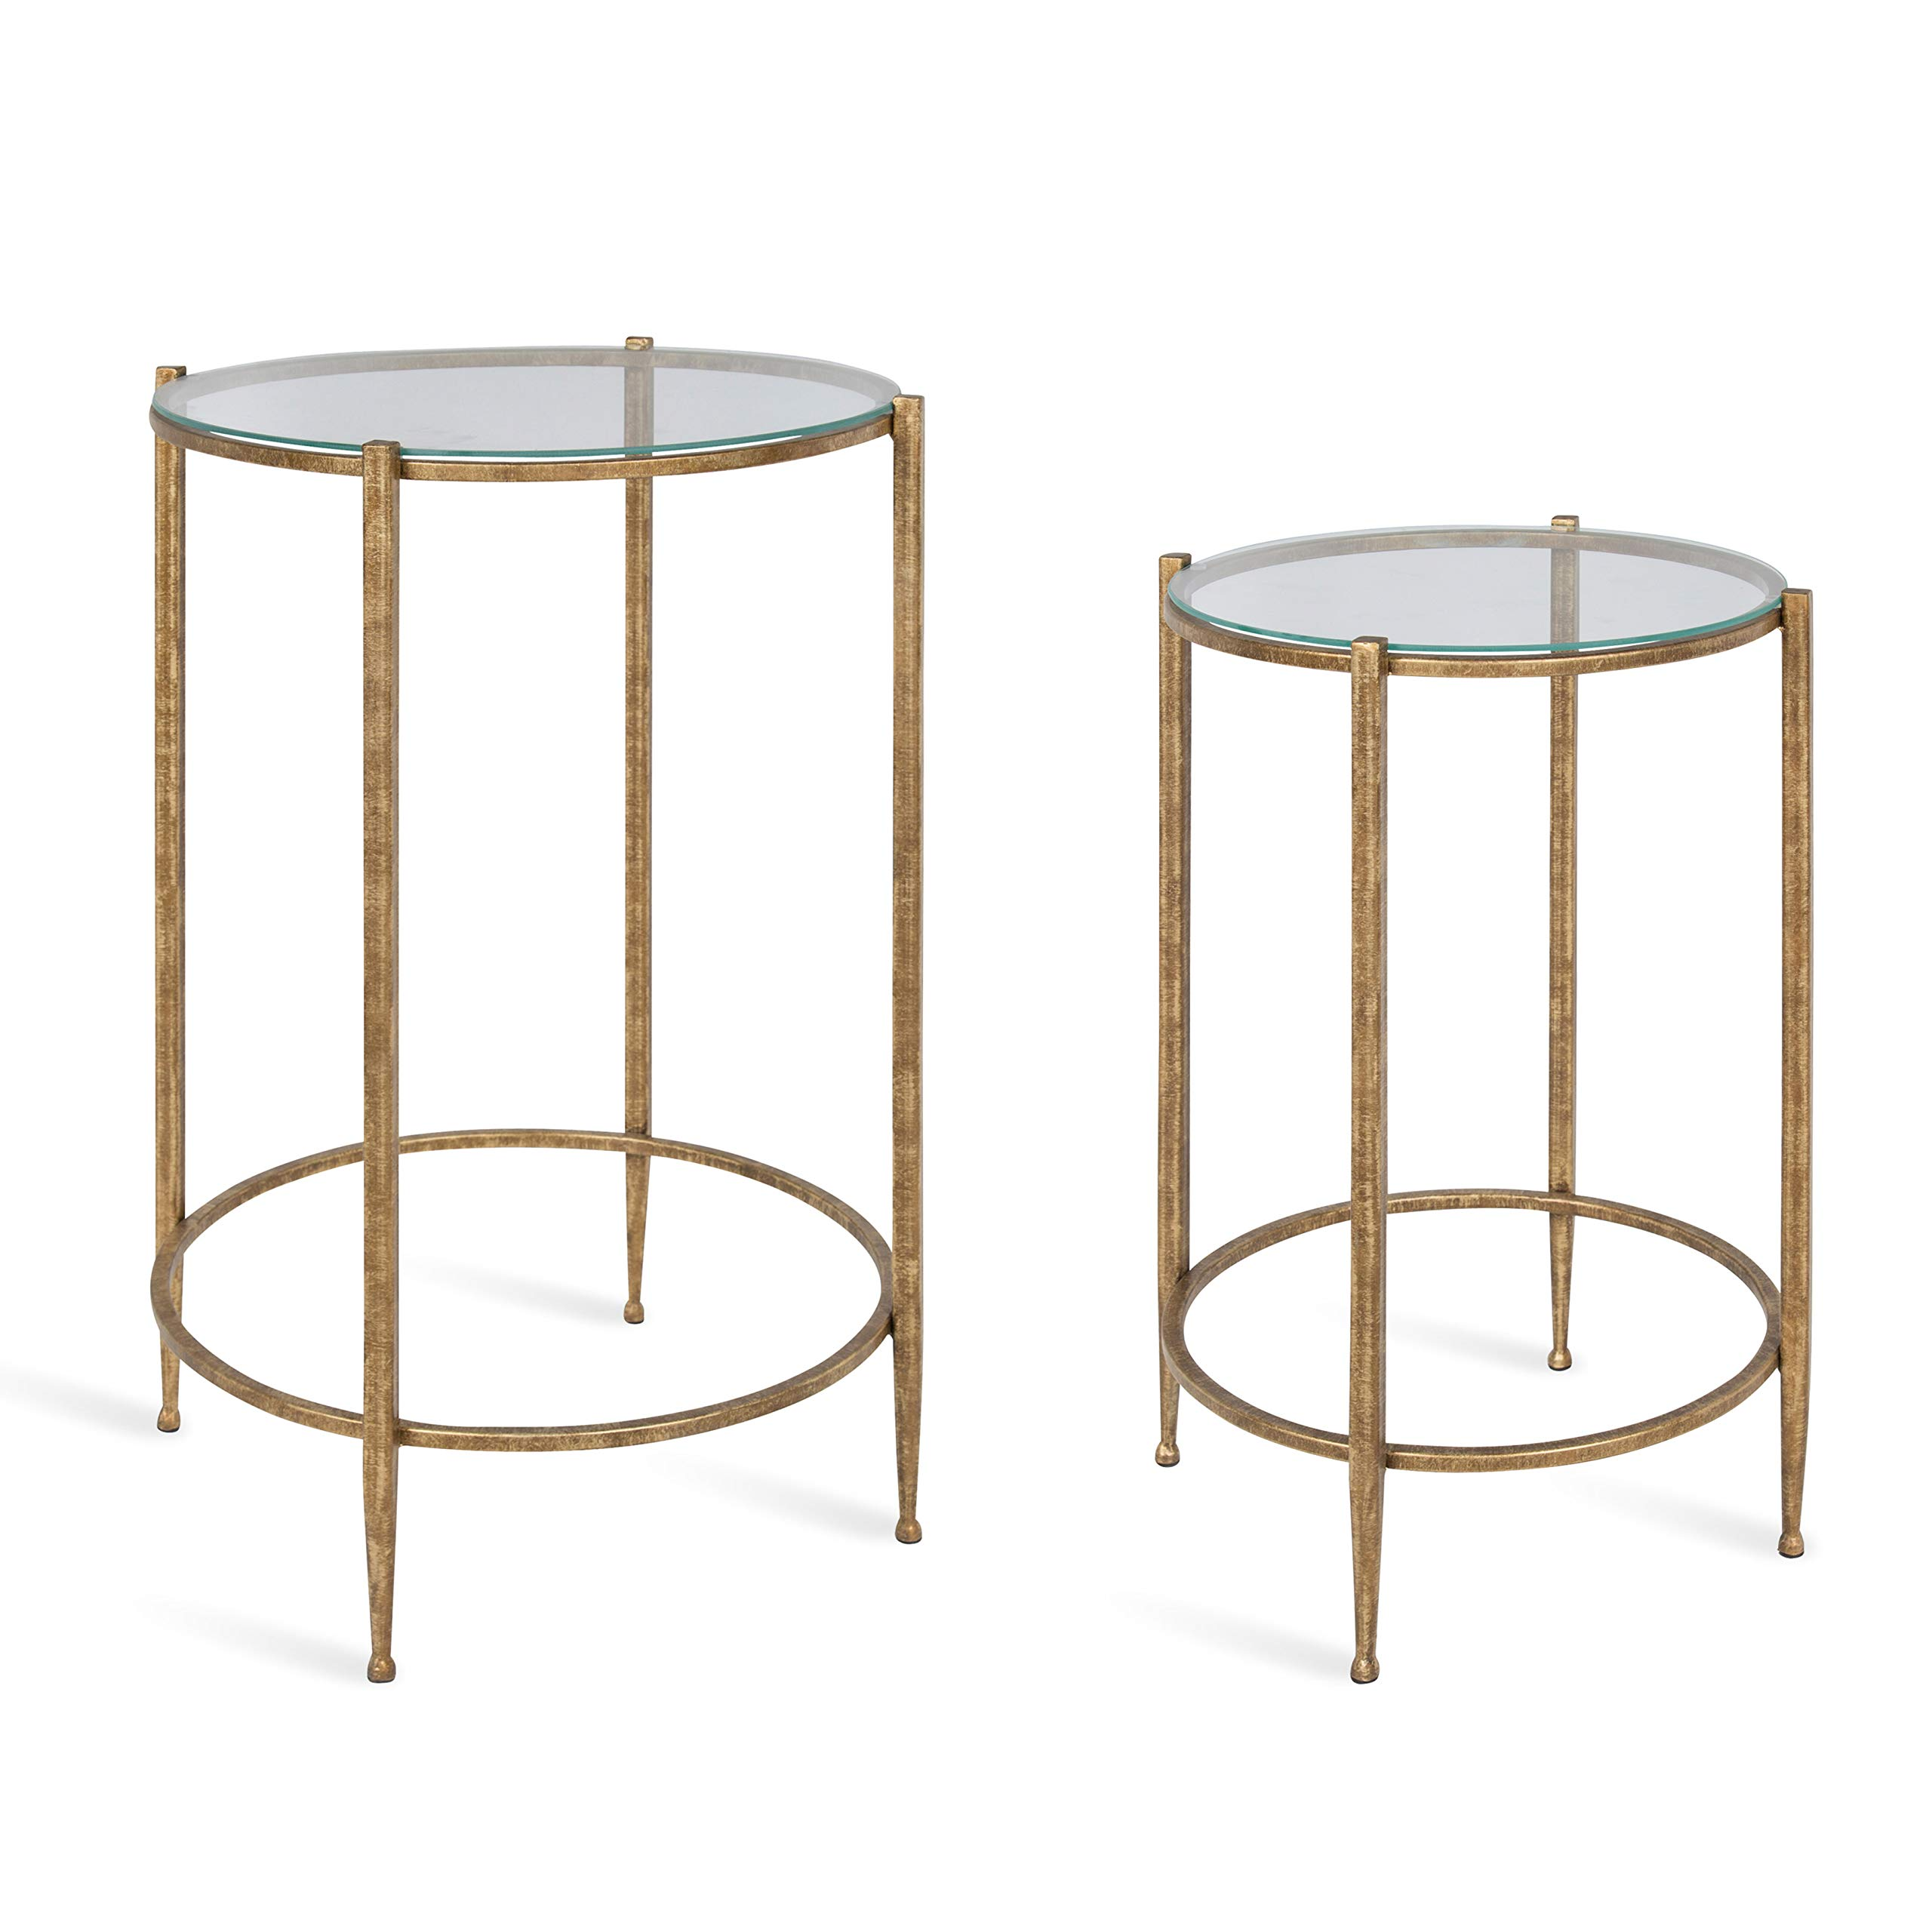 Kate and Laurel Solange Metal and Glass Nesting Tables, Set of 2, Gold by Kate and Laurel